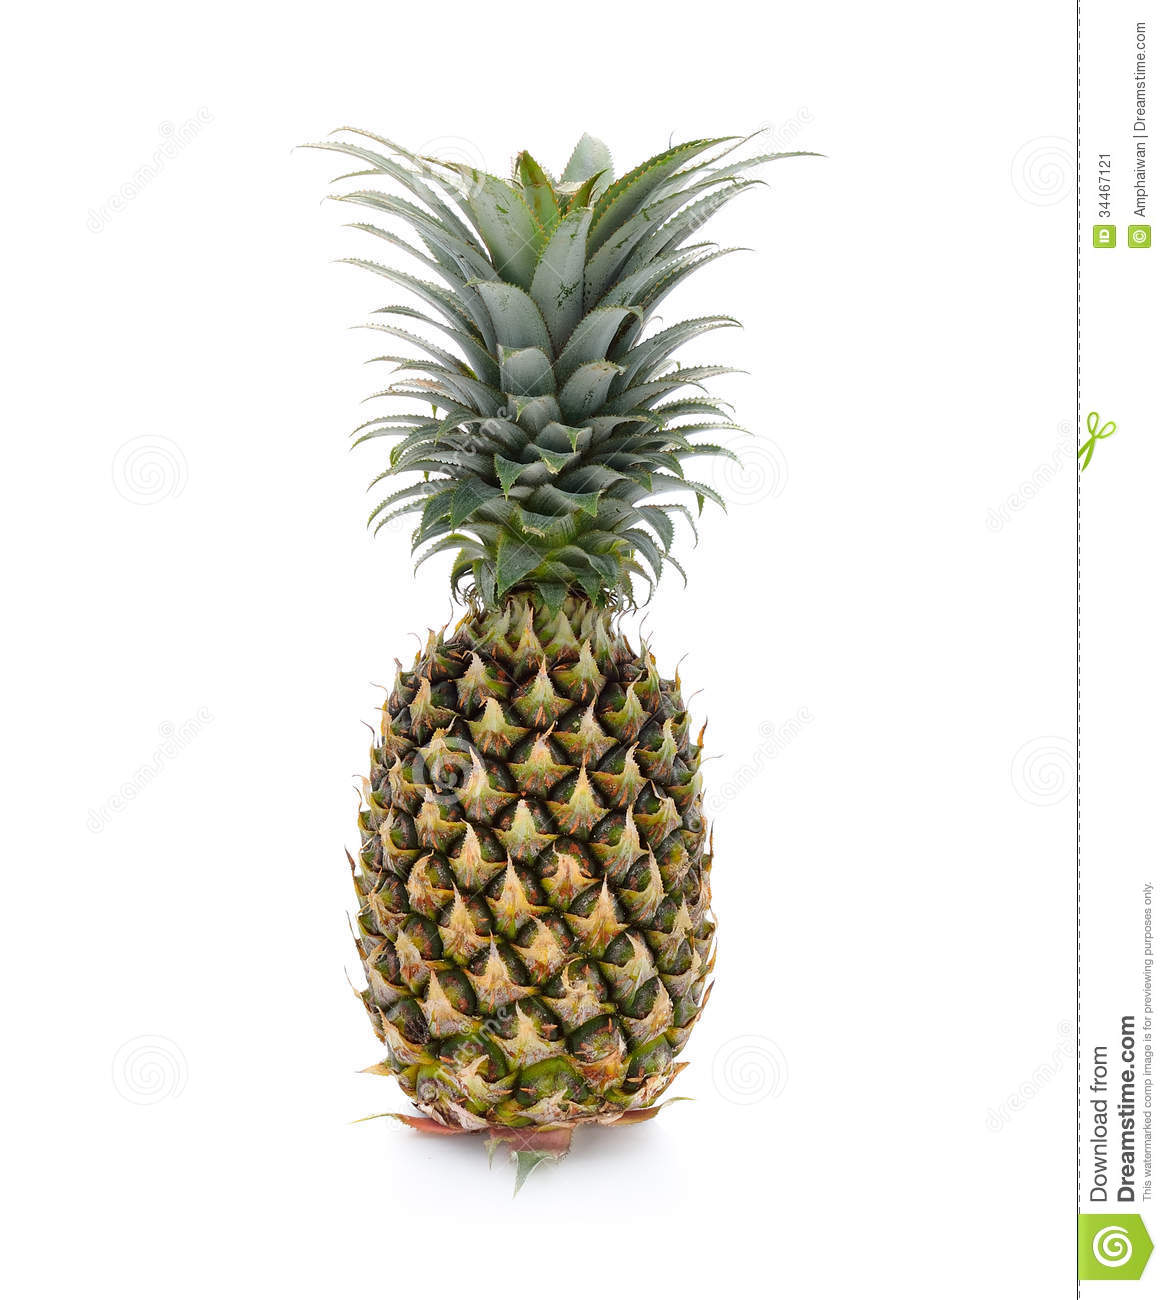 how to tell if a pineapple is ripe by color